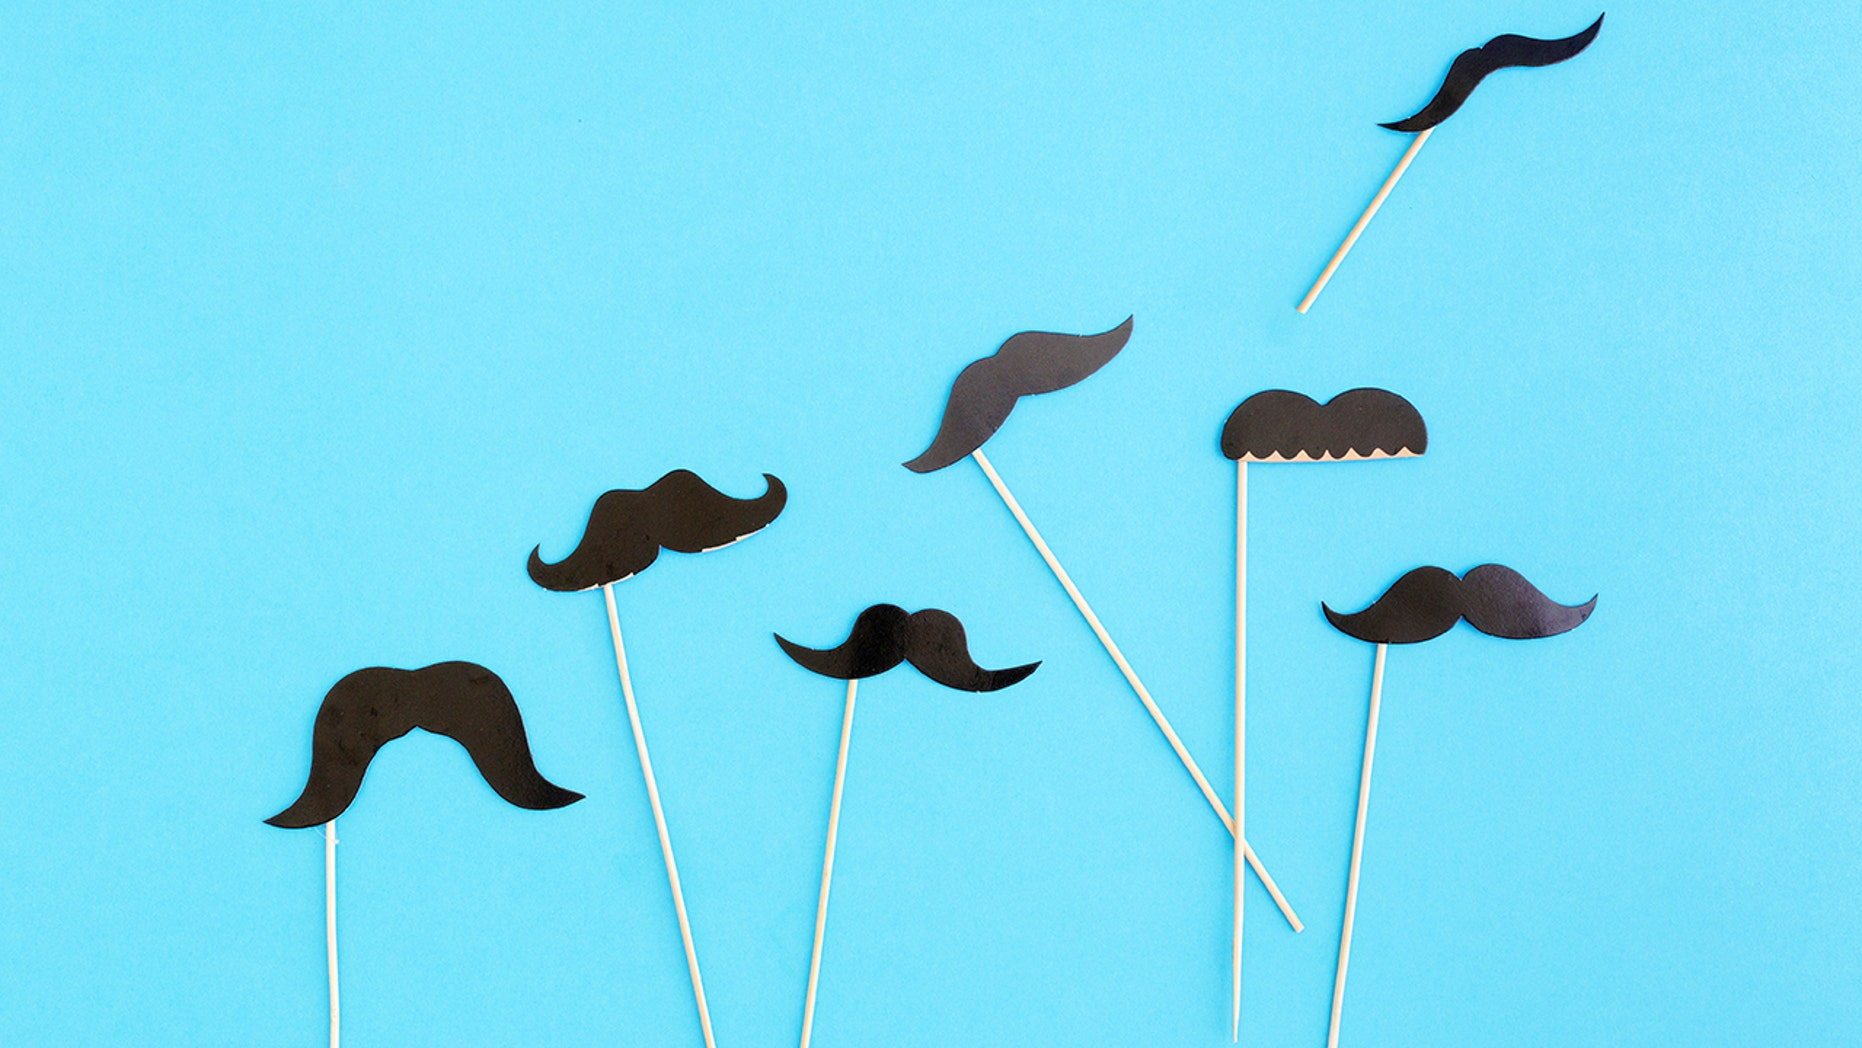 It's Movember, which means mustaches everywhere.